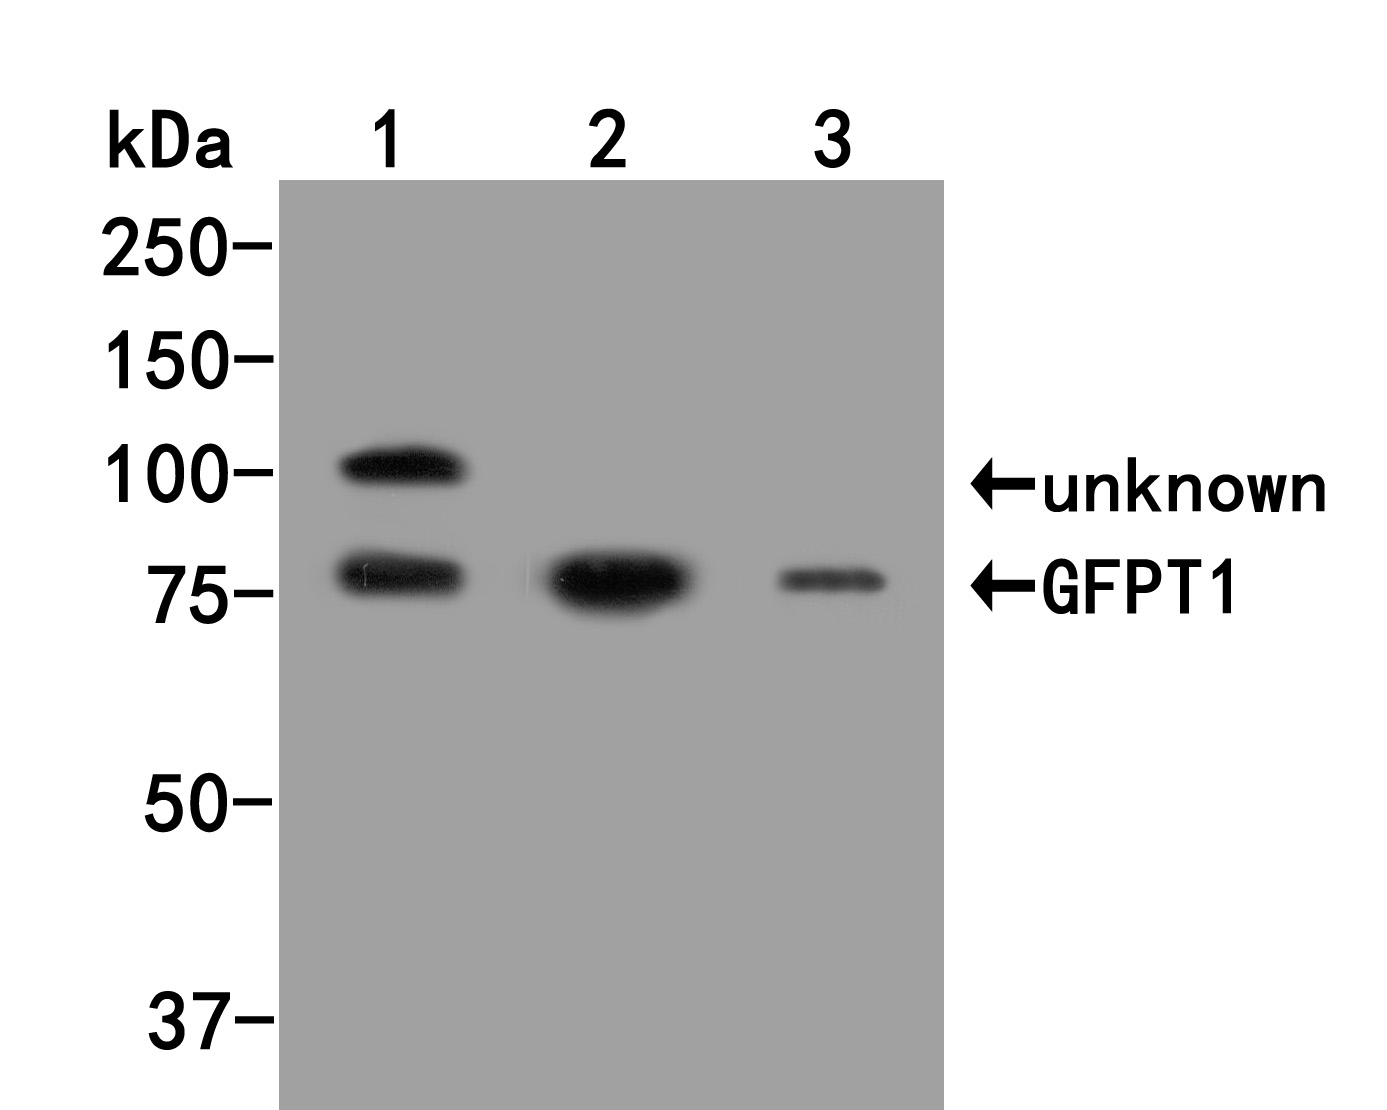 Western blot analysis of GFPT1 on different lysates. Proteins were transferred to a PVDF membrane and blocked with 5% BSA in PBS for 1 hour at room temperature. The primary antibody (HA500038, 1/500) was used in 5% BSA at room temperature for 2 hours. Goat Anti-Rabbit IgG - HRP Secondary Antibody (HA1001) at 1:5,000 dilution was used for 1 hour at room temperature.<br /> Positive control: <br /> Lane 1: 293 cell lysate<br /> Lane 2: Rat testis tissue lysate<br /> Lane 3: Mouse liver tissue lysate